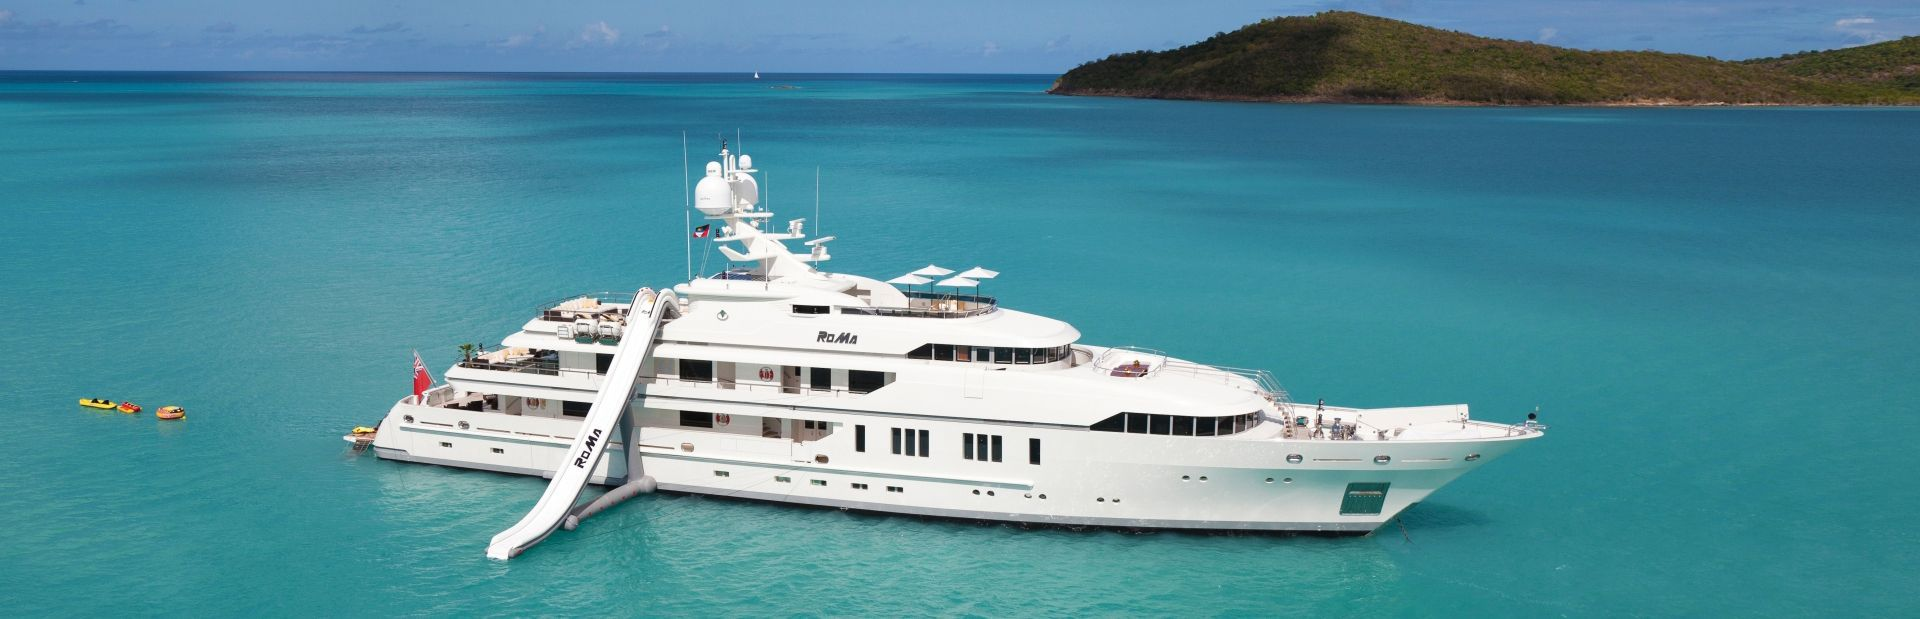 luxury chater yacht RoMa